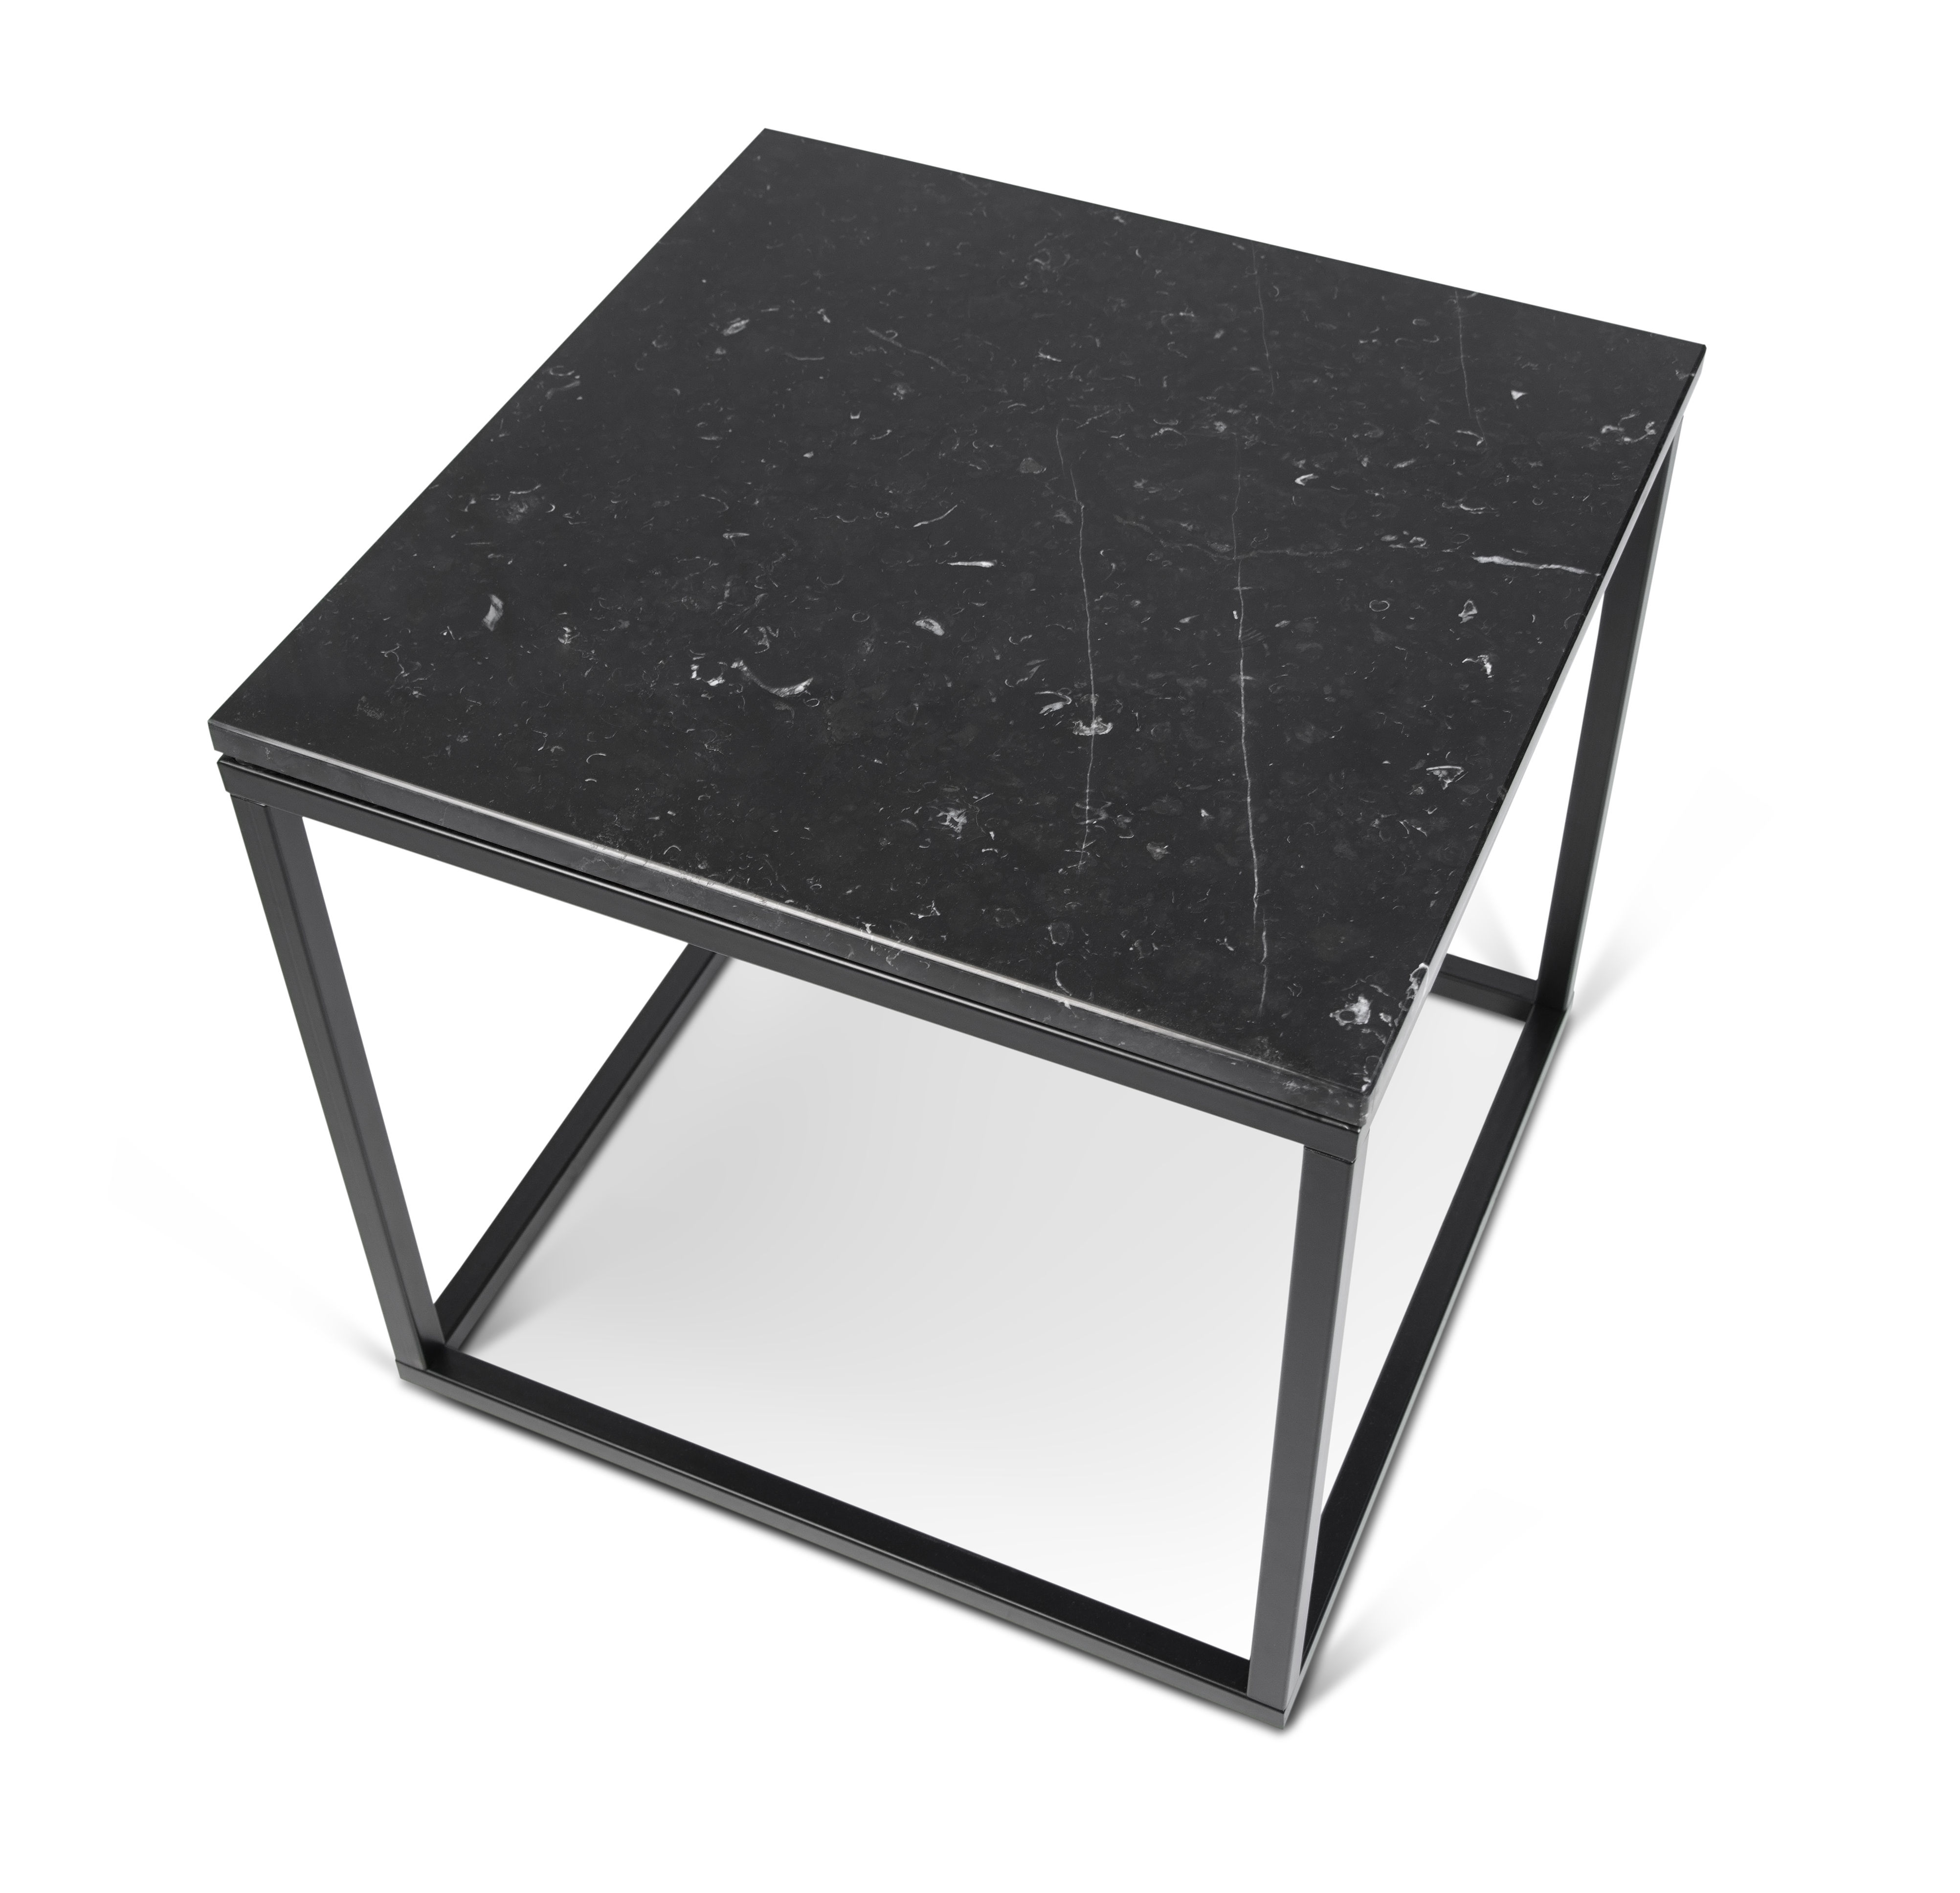 Marble Coffee Table Marble 50 X 50cm Black Marble Black Leg By Pop Up Home